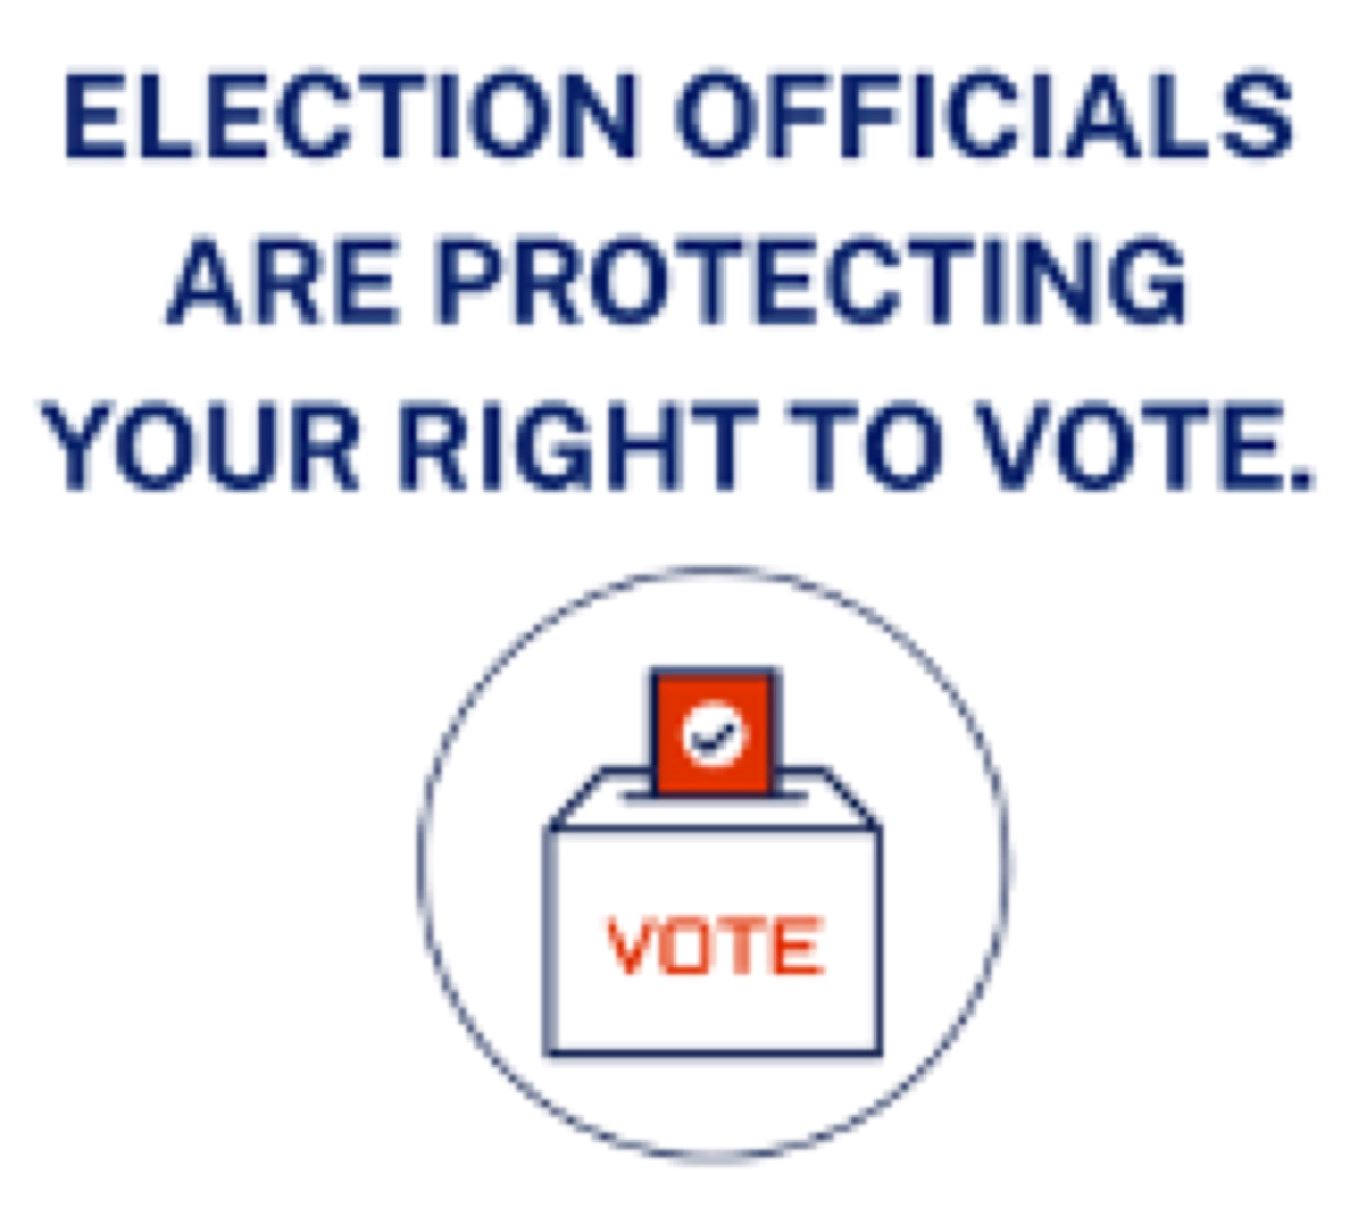 Protecting Your Right to Vote